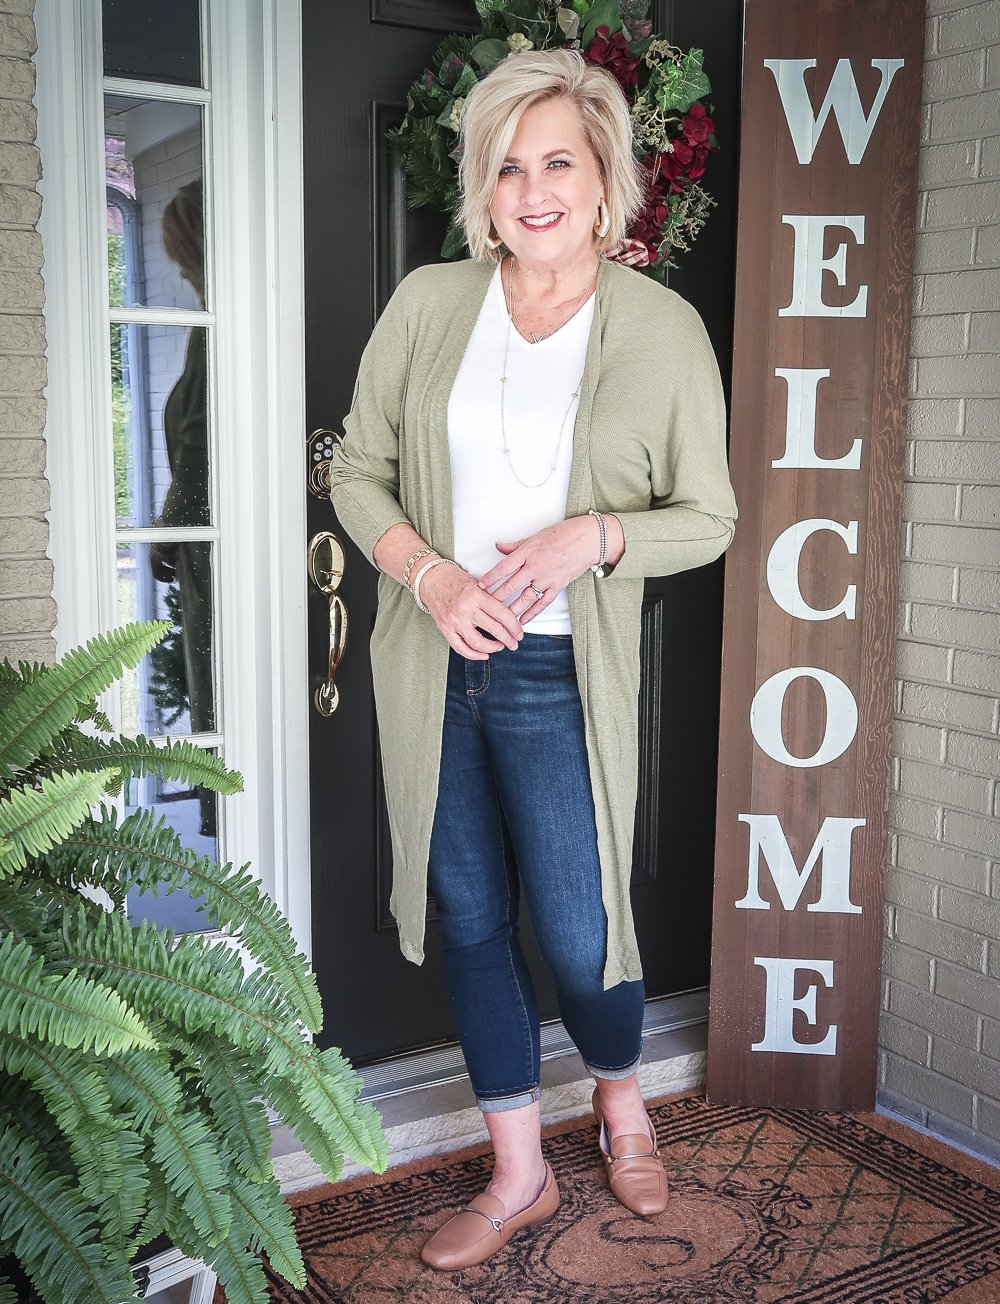 Fashion Blogger 50 Is Not Old is doing a Tuesday Try-On Session with Target and styling a long olive cardigan, a white v-neck tee shirt, and dark jeans from Chico's